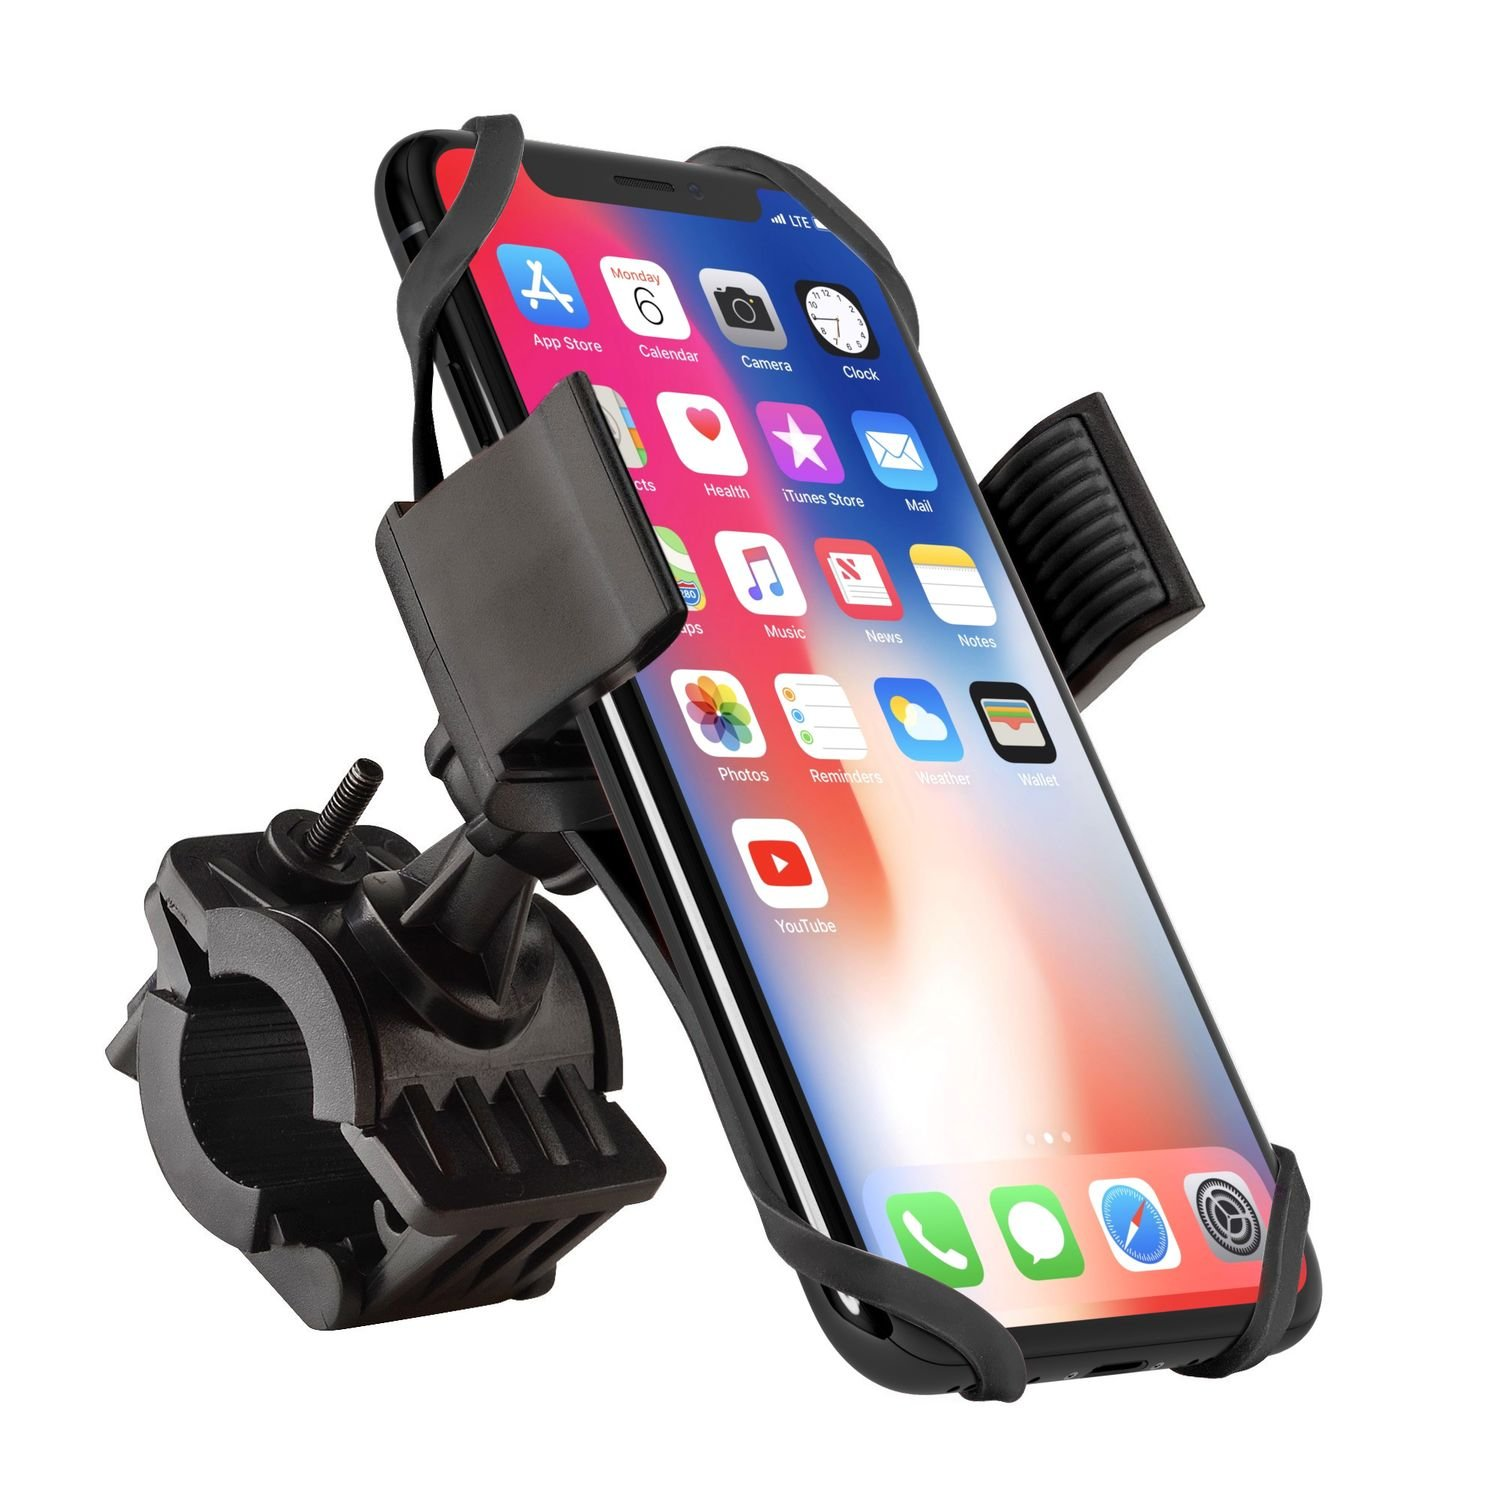 Bike Mount Phone Holder, Insten Universal Bicycle Motorcycle MTB Rack Handlebars Mount Cradle w/Secure Grip 360 Rotatable Rubber Strap Compatible with iPhone X/XS Max/XR/7/8 Plus, Galaxy S9/S9+ Black